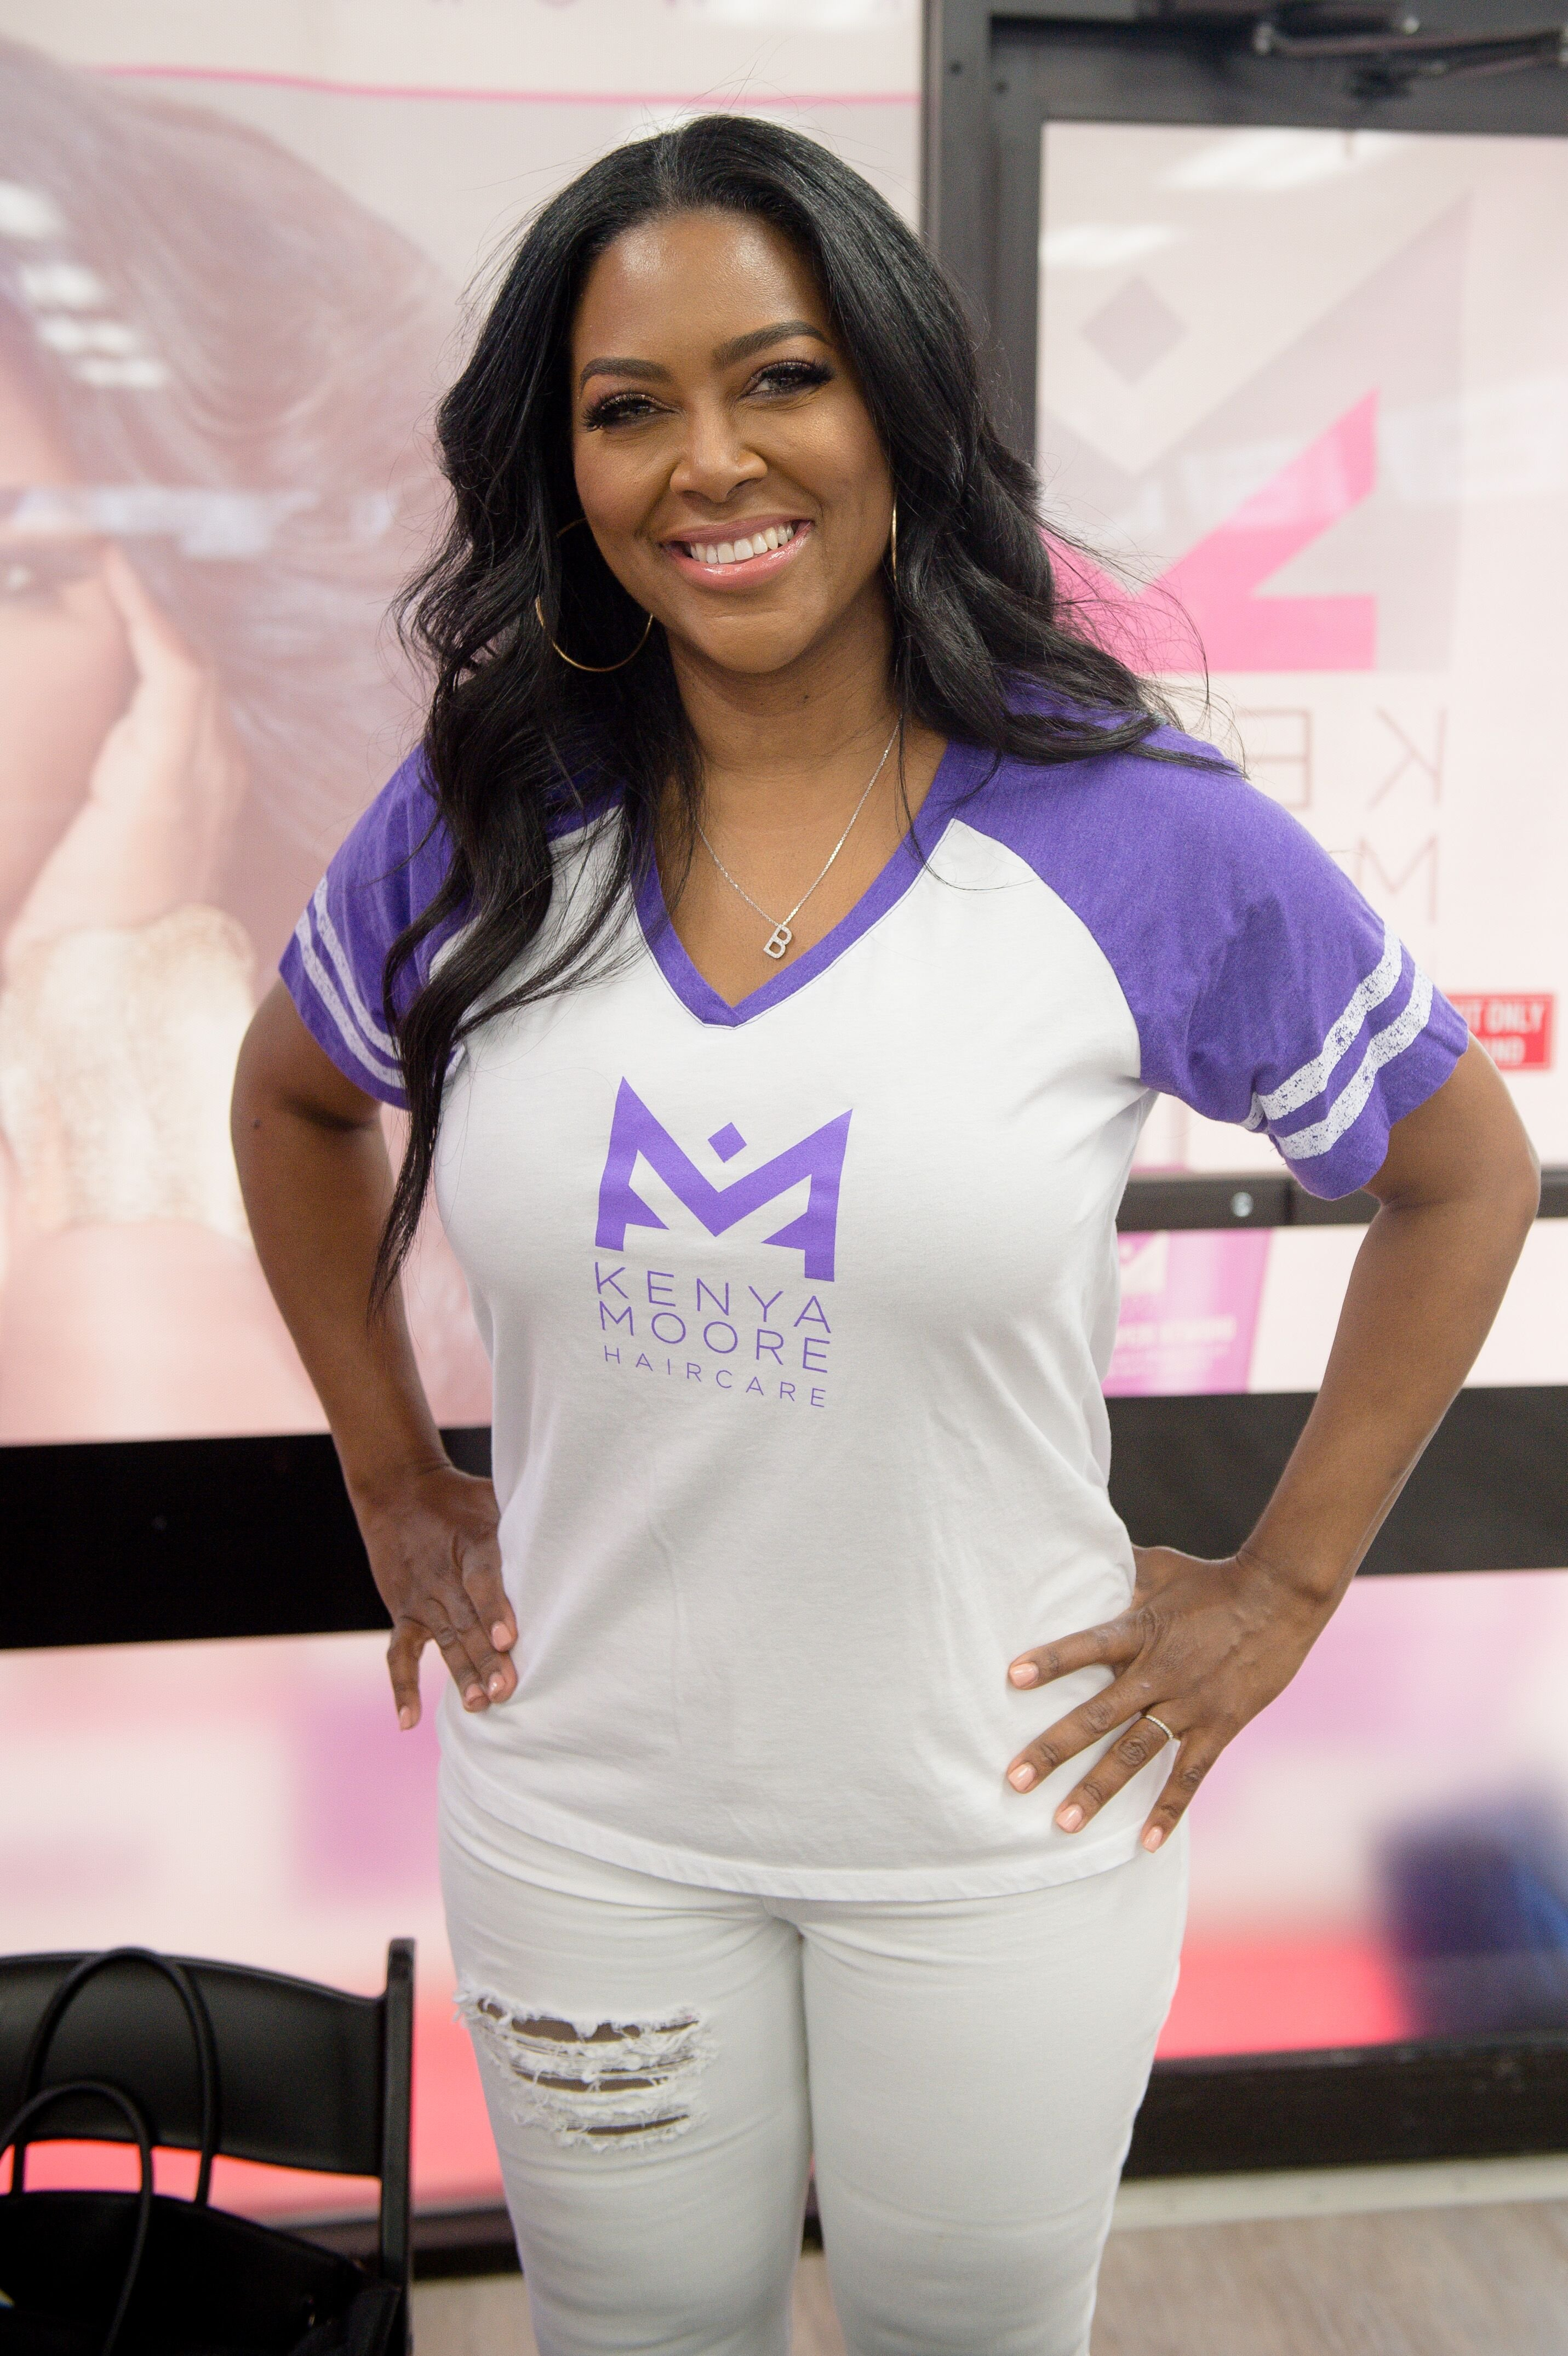 Kenya Moore attends Sally Beauty in store appearance on May 04, 2019 in Atlanta, Georgia. | Source: Getty Images